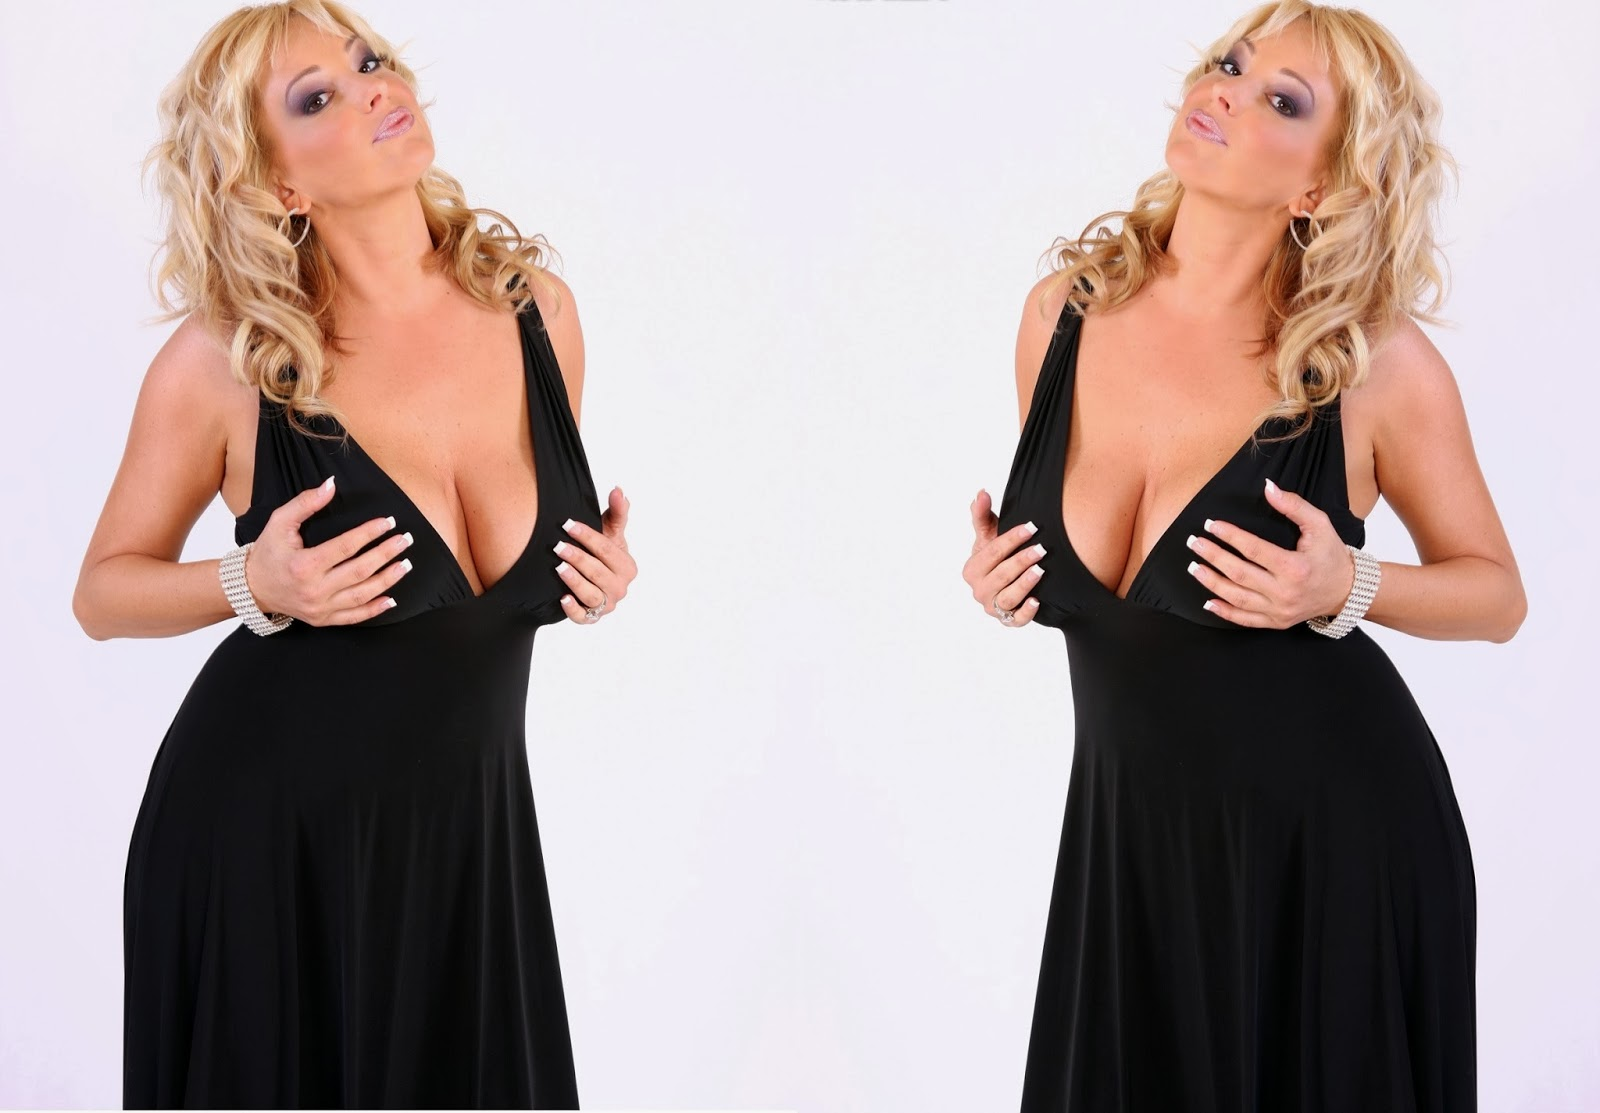 One the rachel aziani pictures sweet